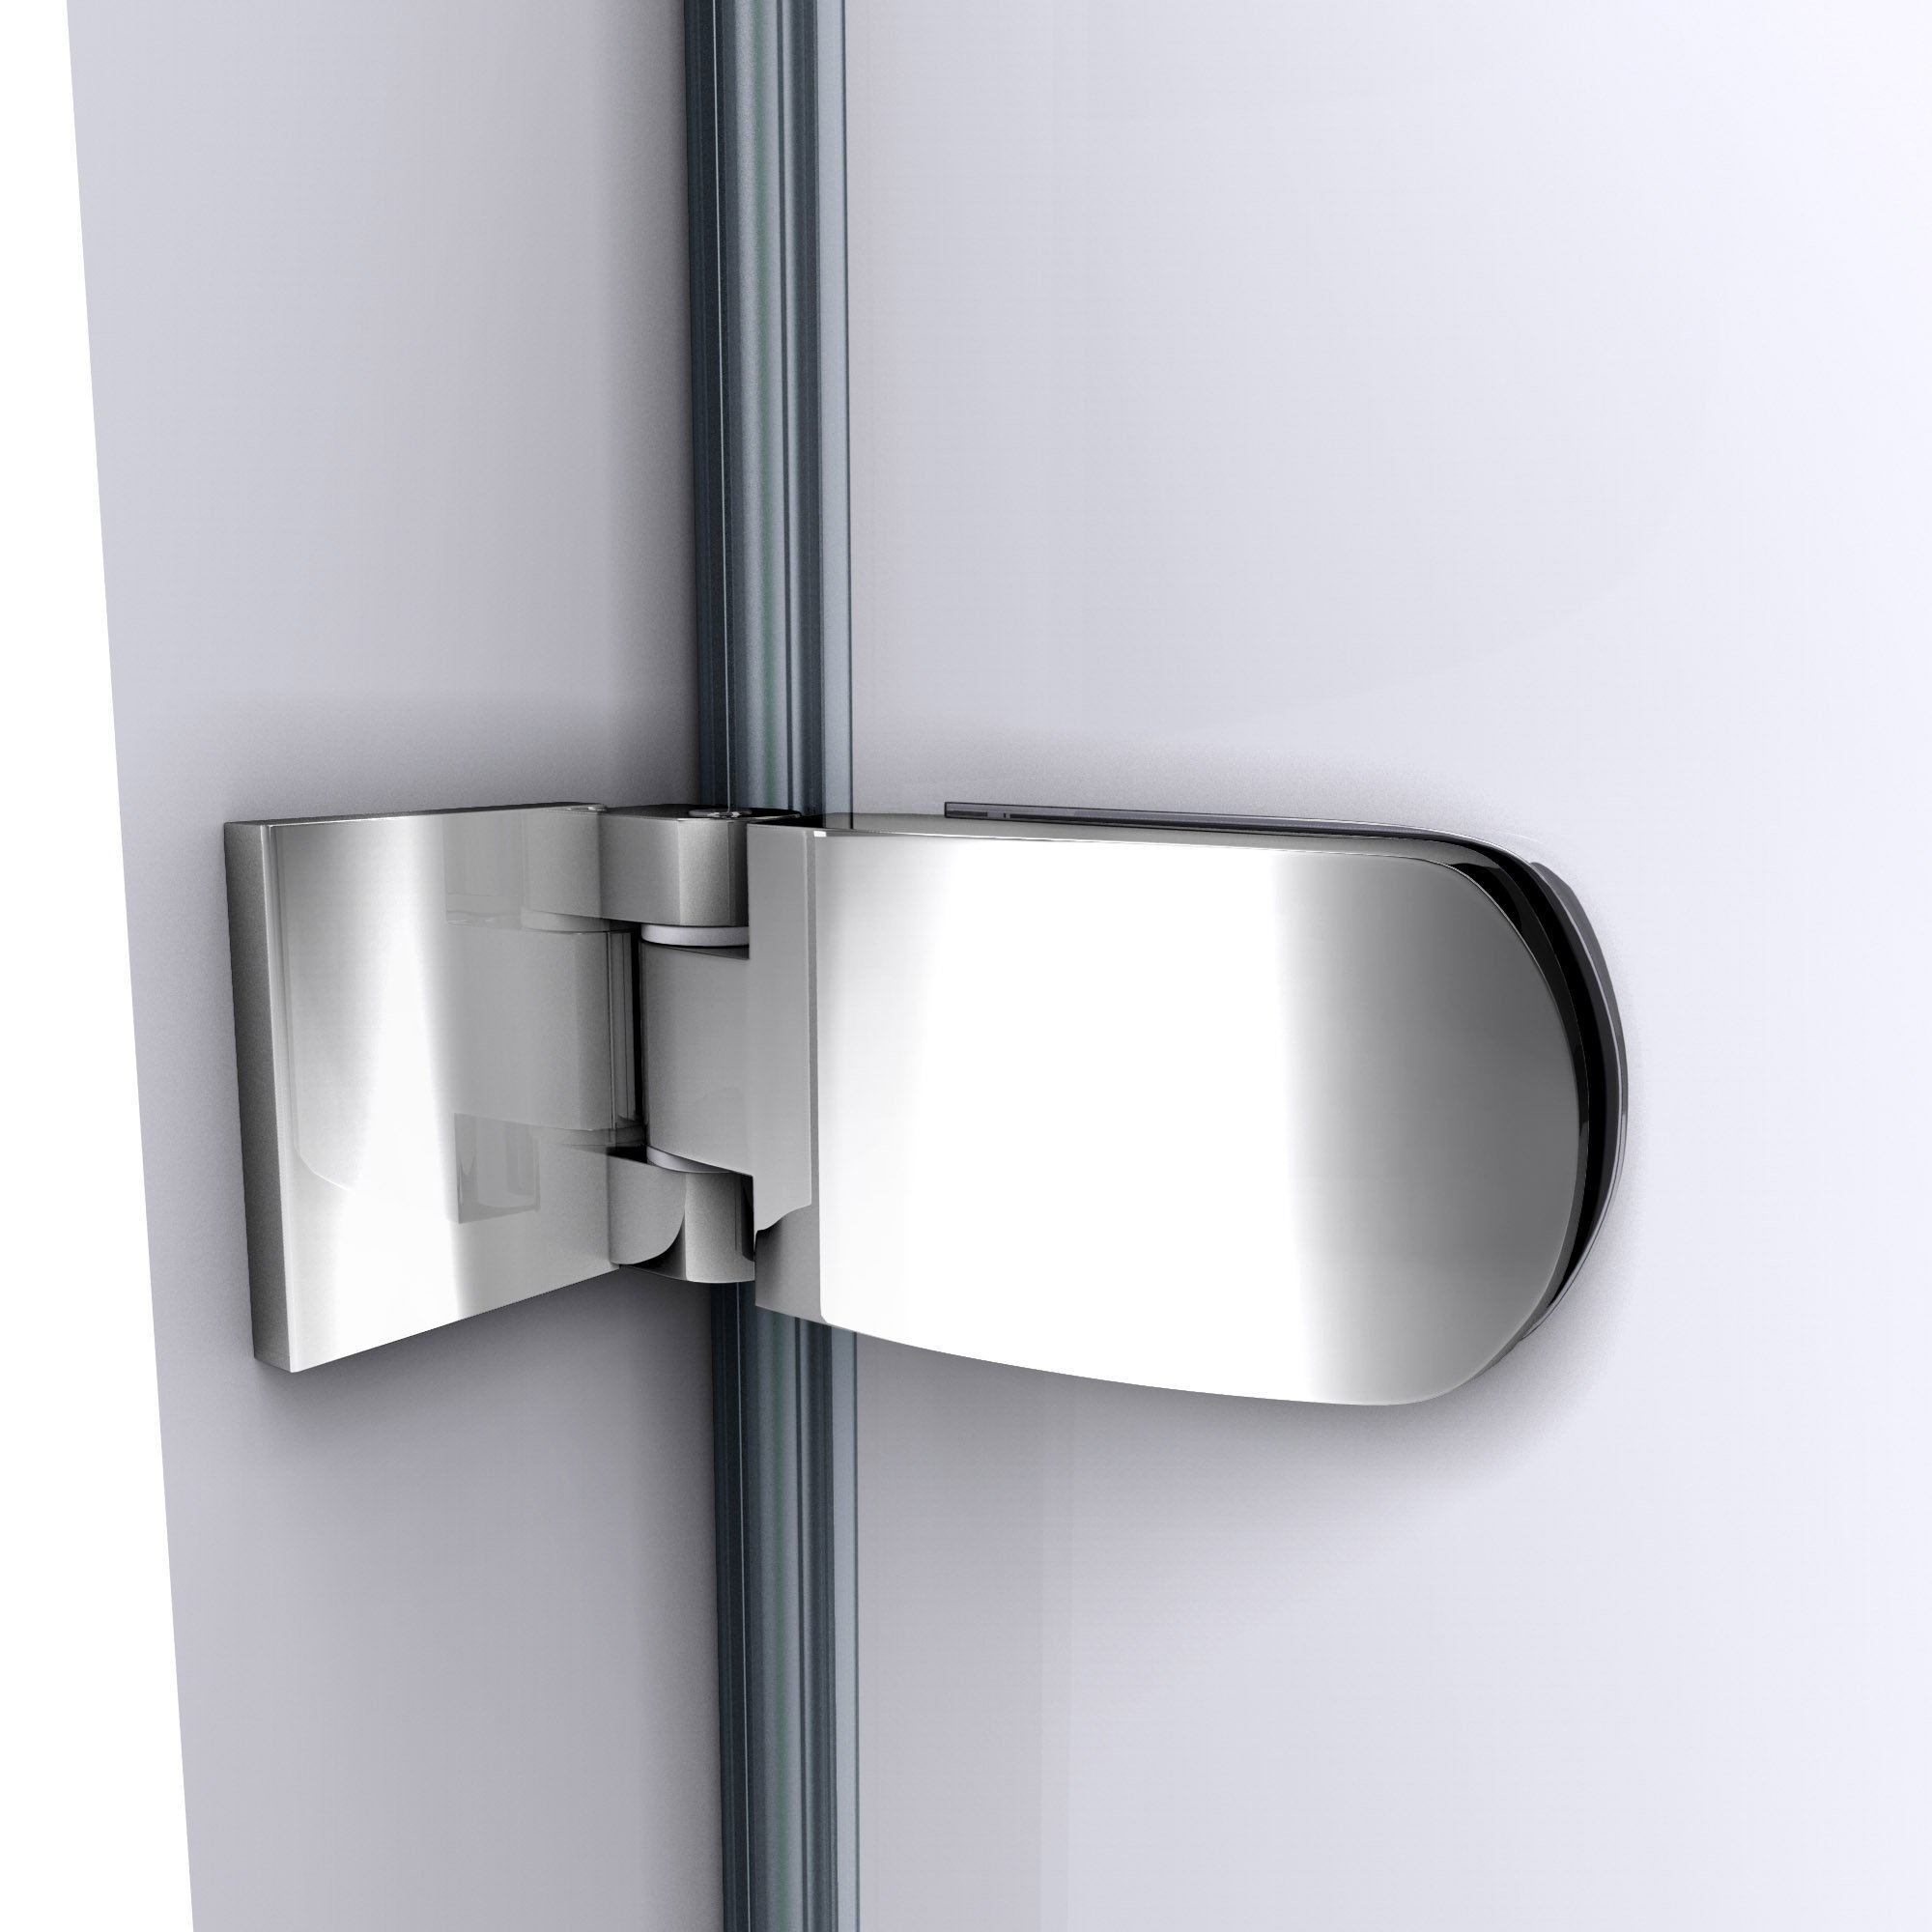 DreamLine Aqua Uno 34 in. Width, Frameless Hinged Tub Door, 1/4'' Glass, Chrome Finish by DreamLine (Image #4)